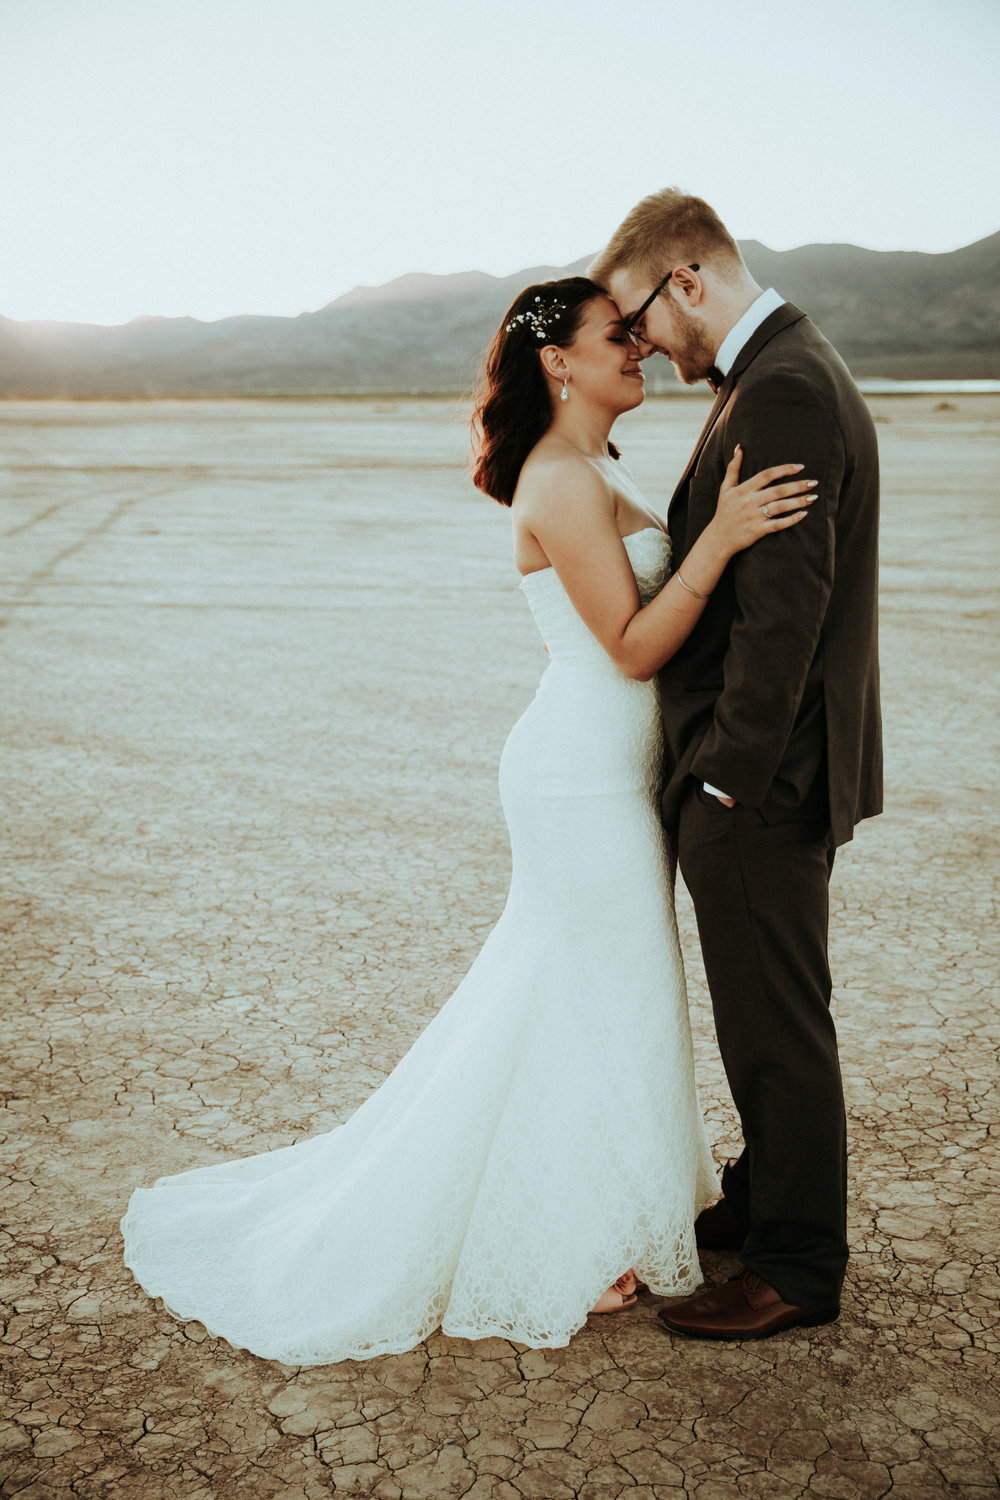 Las Vegas Wedding Photographer - Henderson, NV